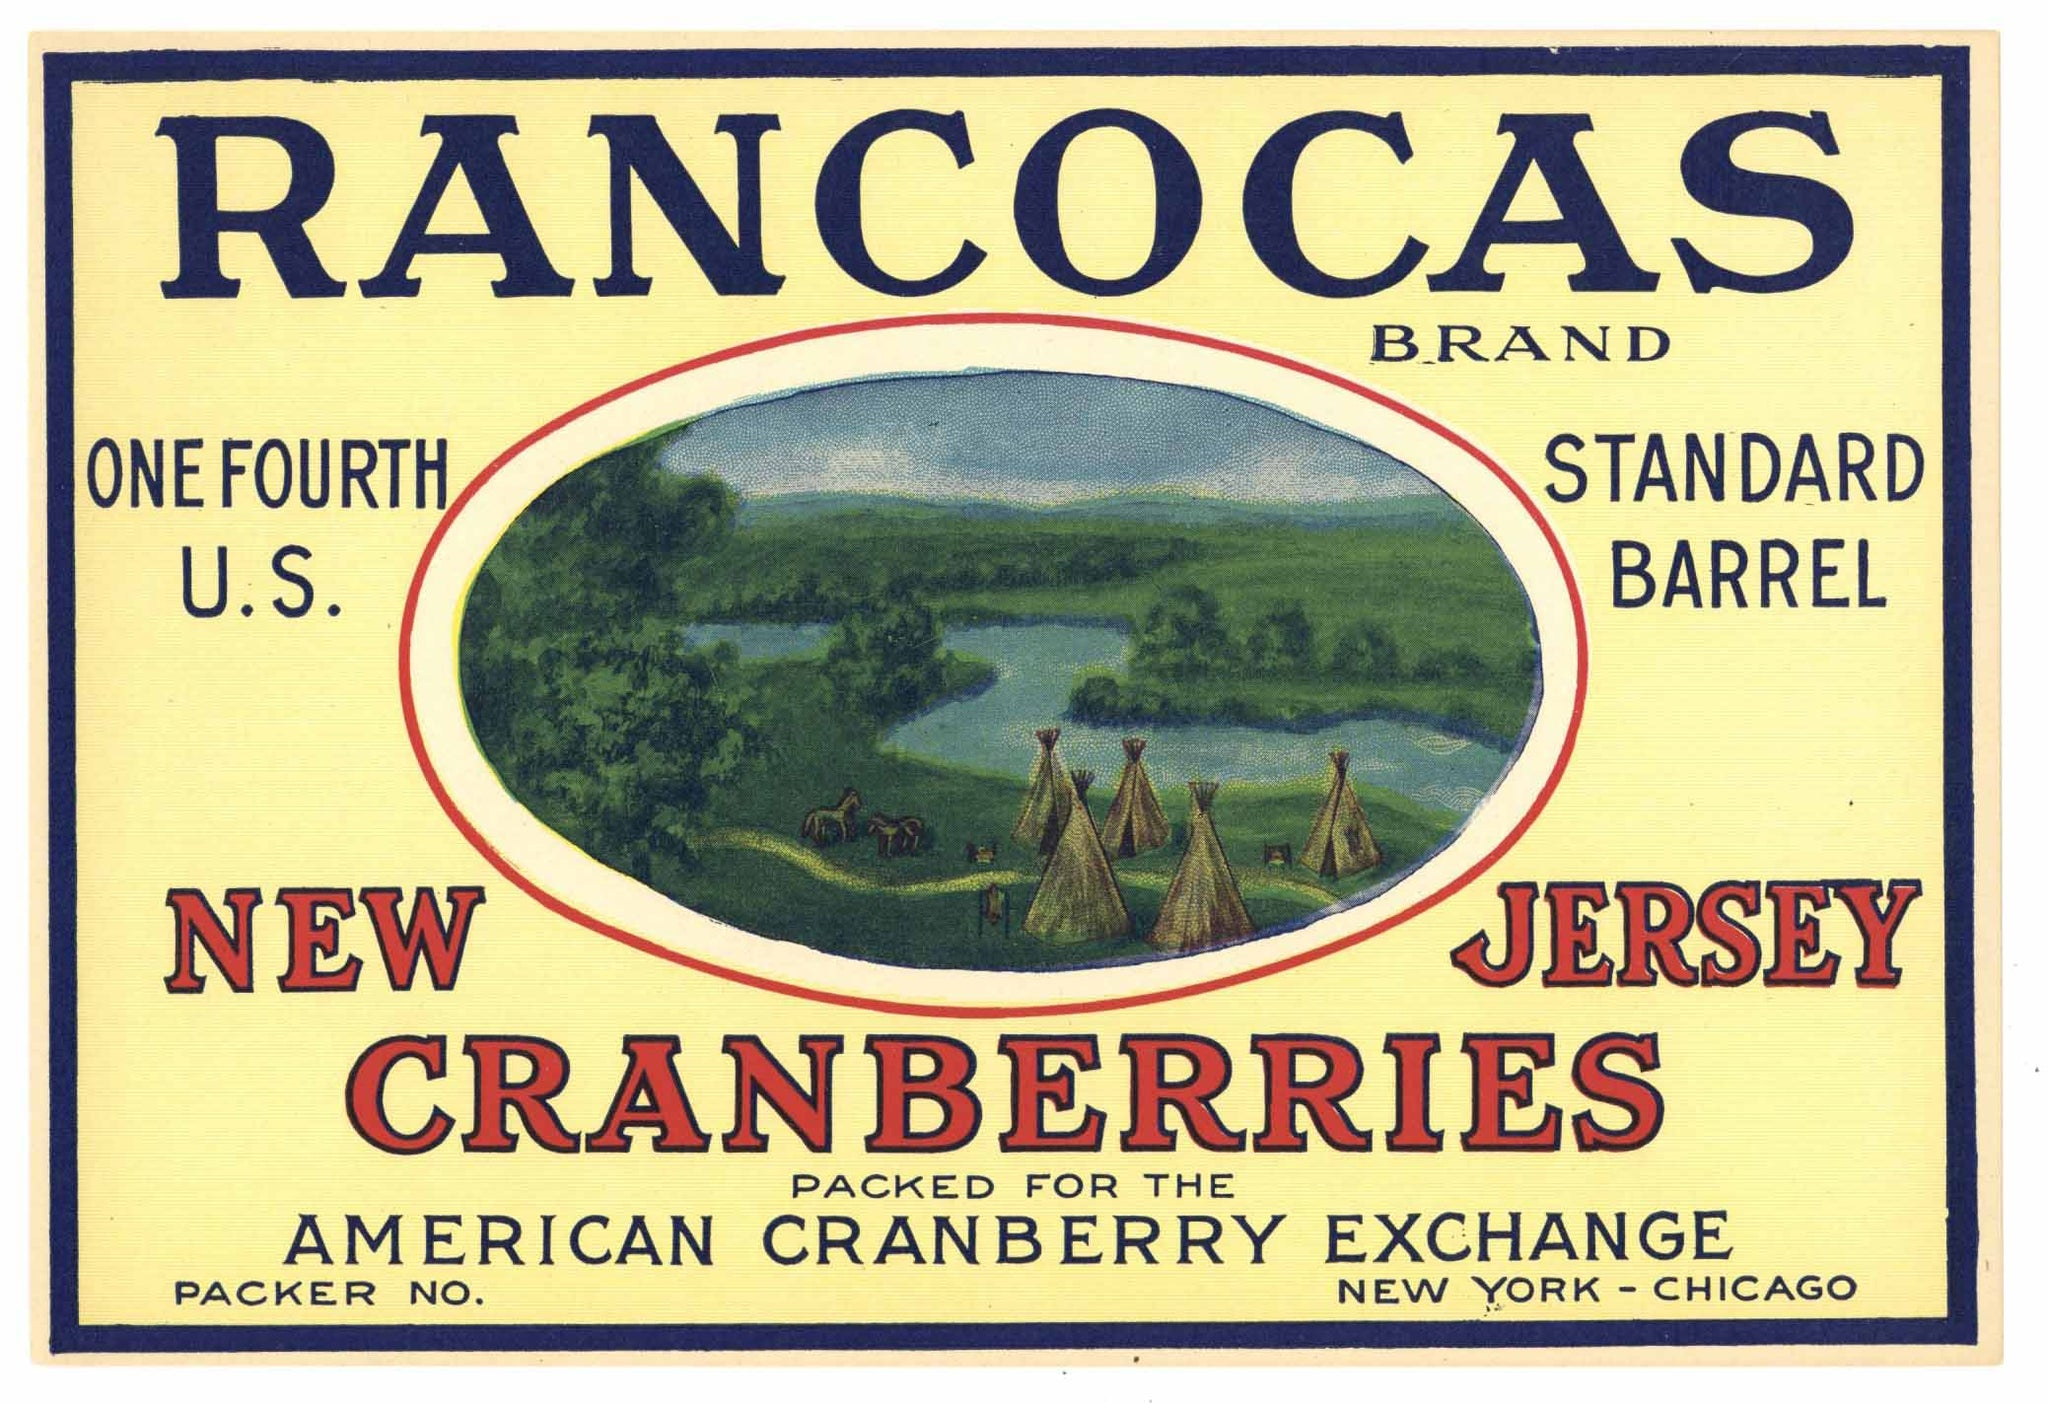 Rancocas Brand Vintage New Jersey Cranberry Crate Label, 1/4